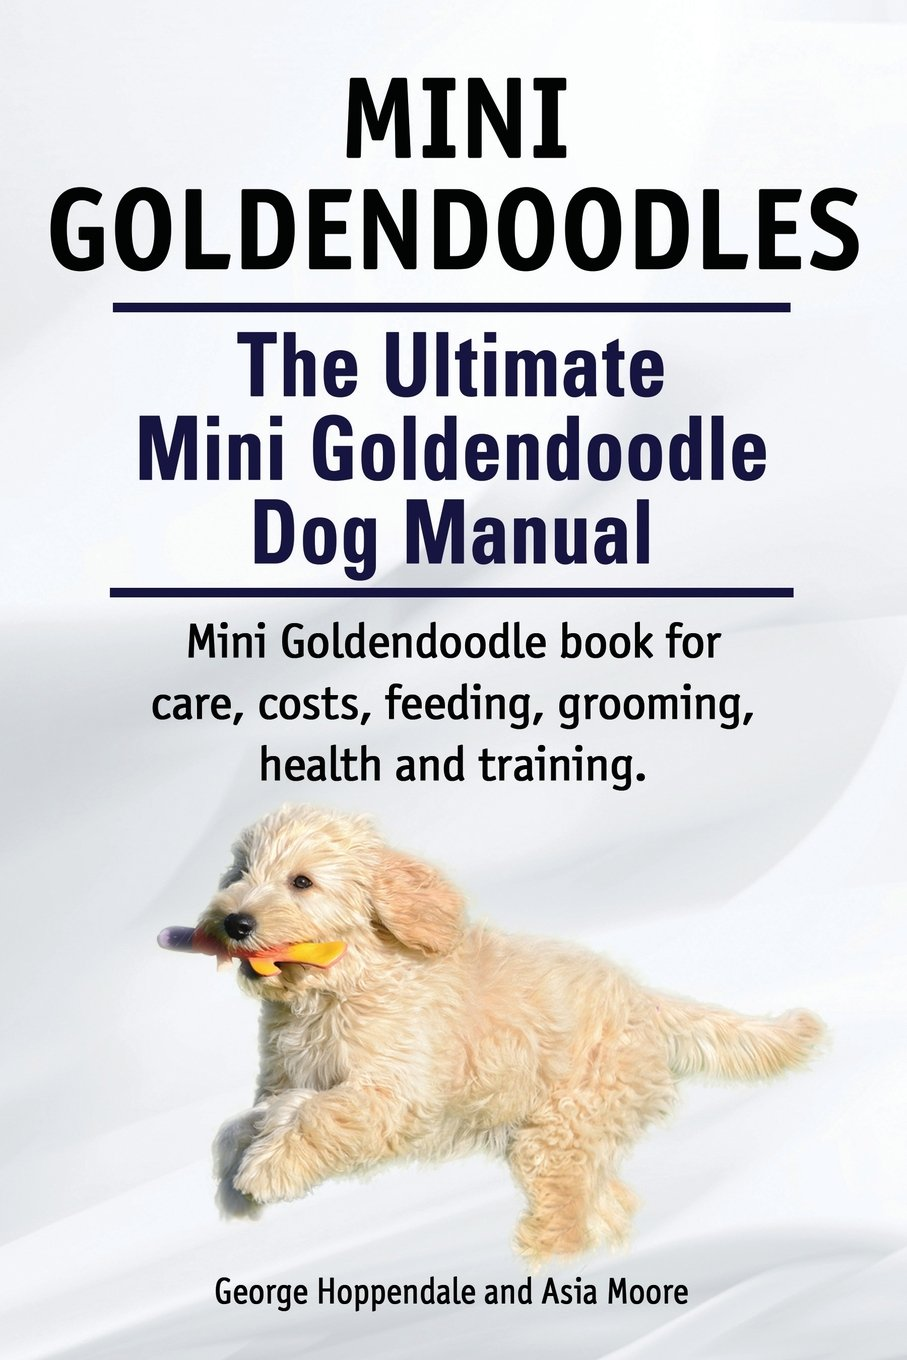 Mini Goldendoodles. The Ultimate Mini Goldendoodle Dog Manual. Miniature Goldendoodle book for care, costs, feeding, grooming, health and training. ebook